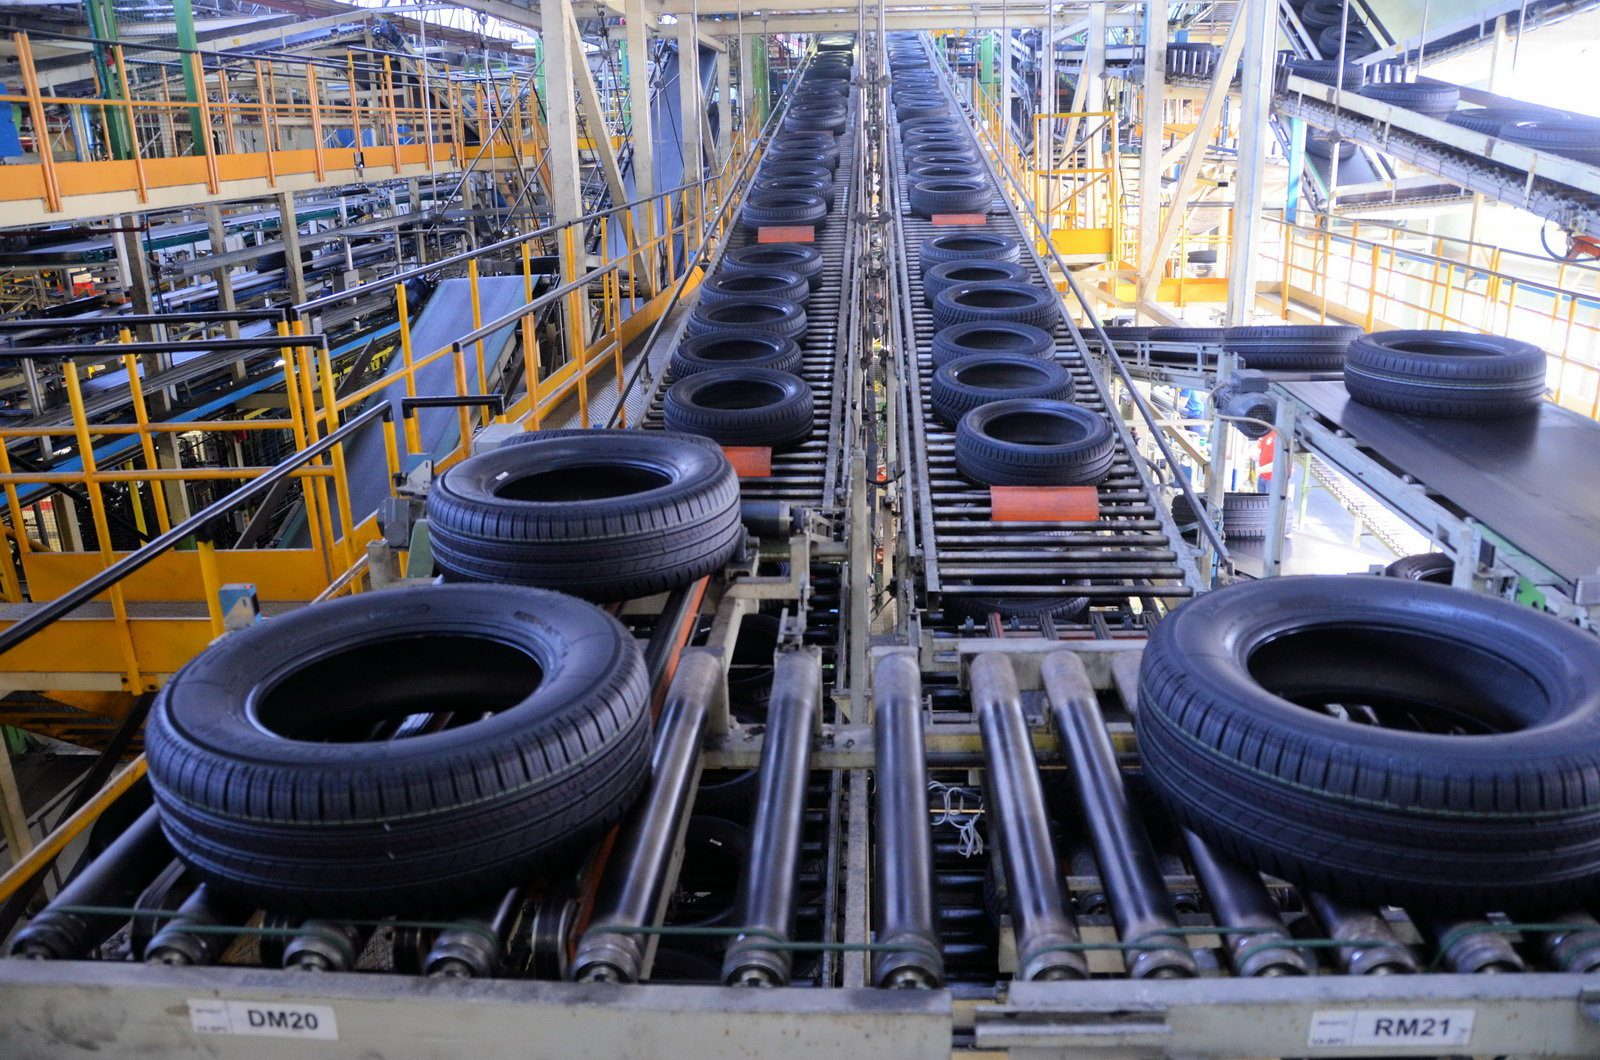 michelin_gomme_stabilimento_cuneo_2